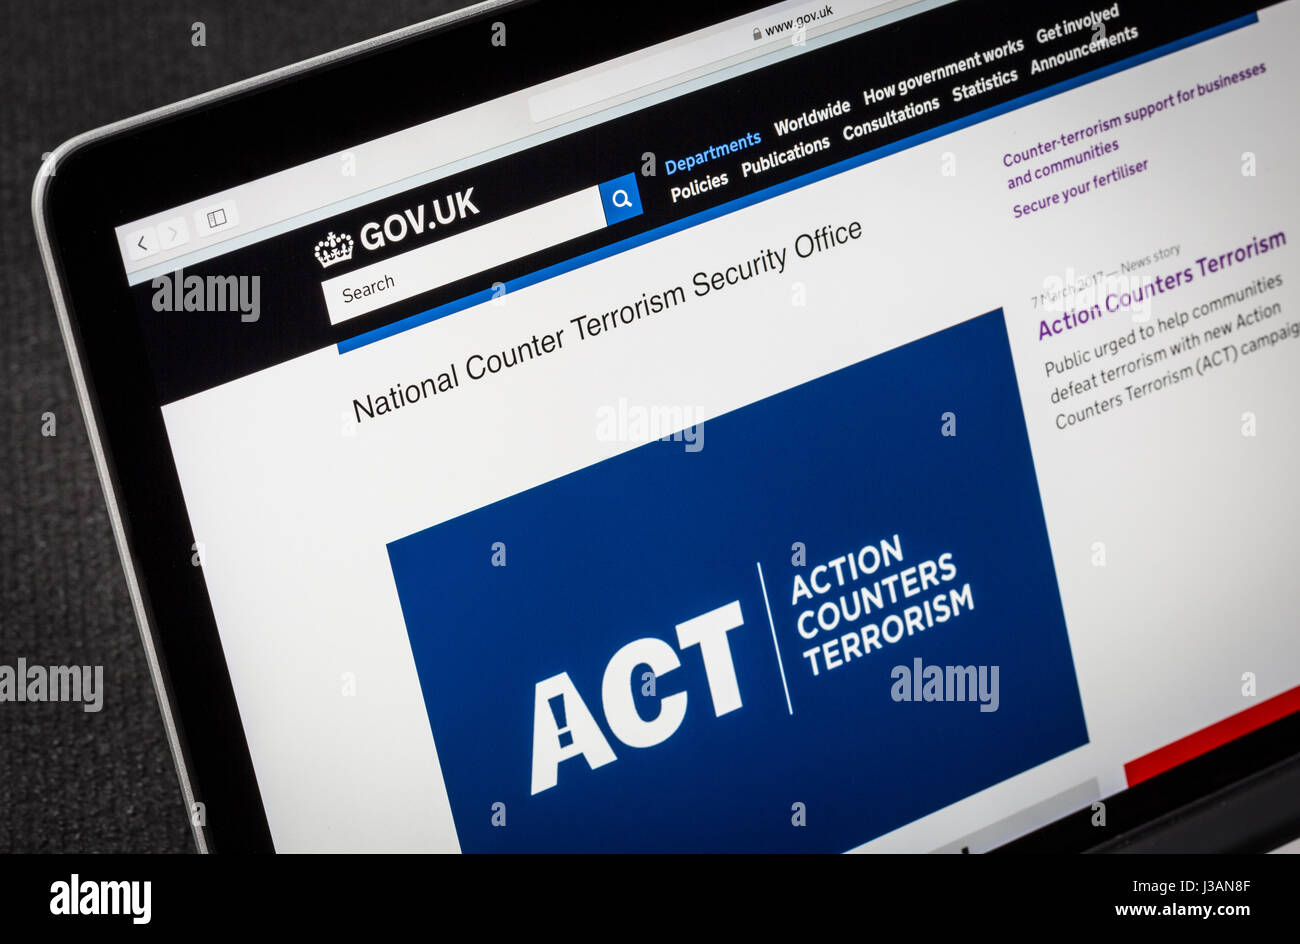 UK Government counter terrorism website - Stock Image